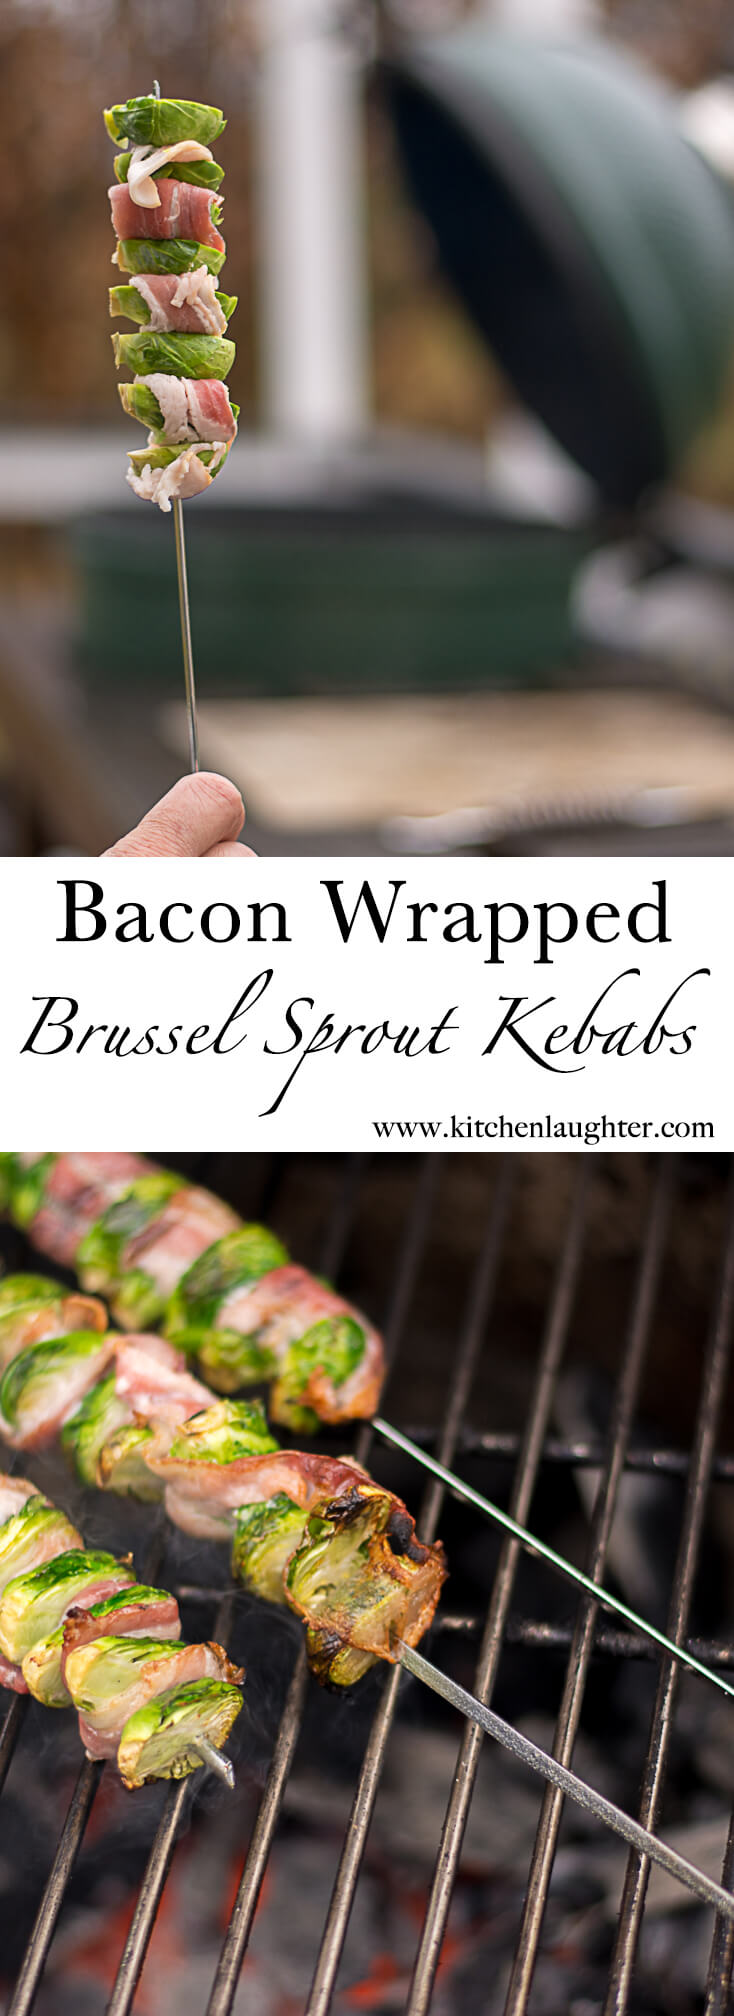 Grilled Bacon Wrapped Brussel Sprouts Kebabs #Grill #BGE #BigGreenEgg #Vegetables #GrilledVeggies #BrusselSprouts #Bacon